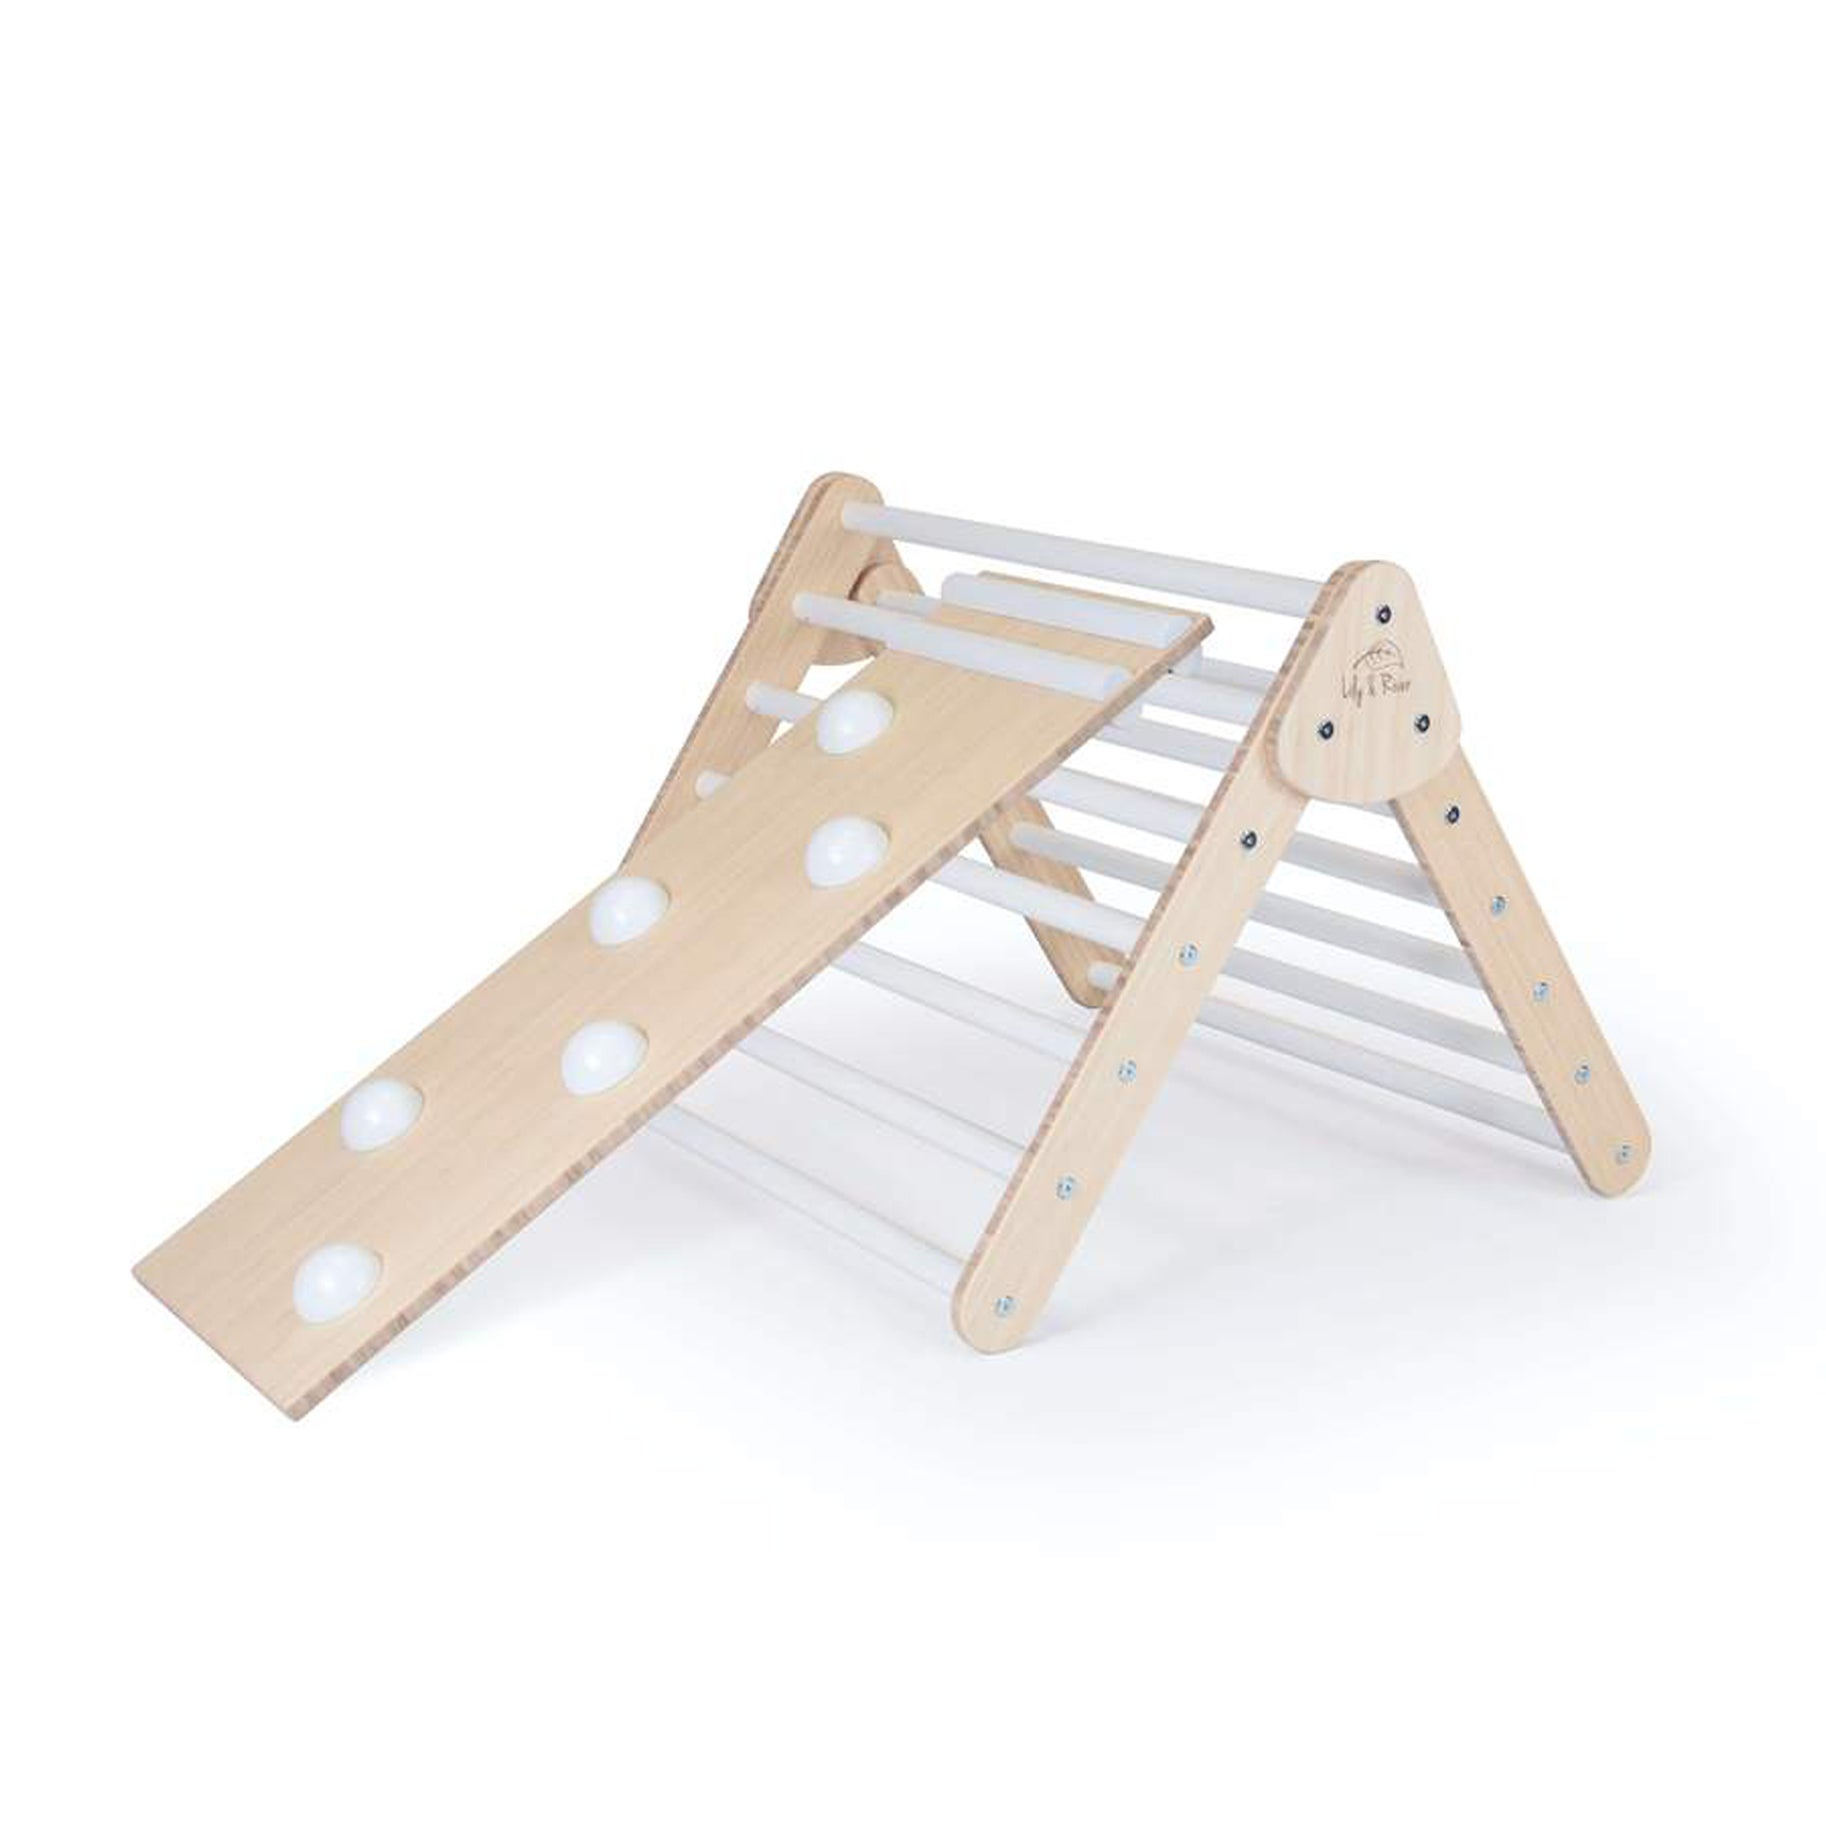 The-Best-Baby-Toys-Option-Lily-And-River-Little-Climber-with-Reversible-Rock-Wall